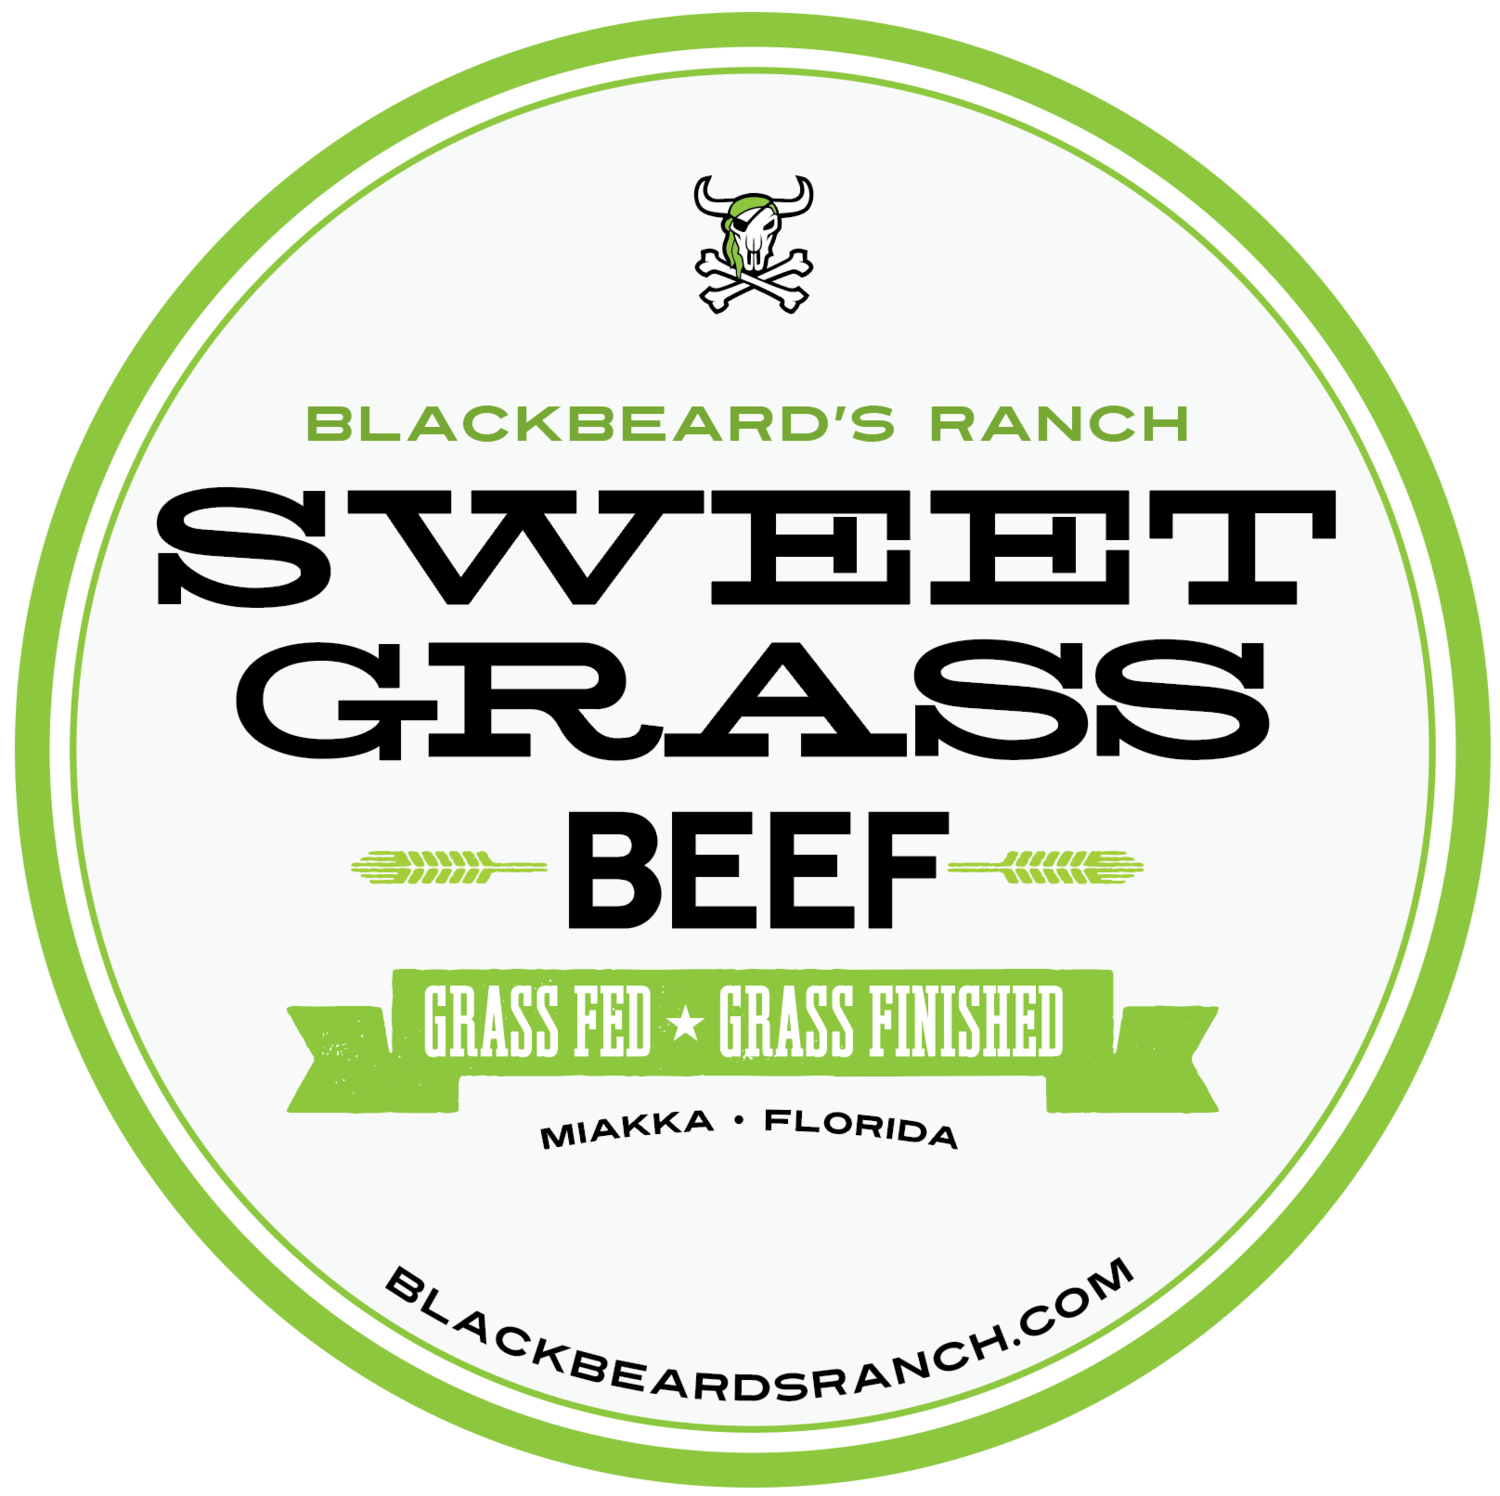 New Sweet Grass Beef- London Broil Top Round Avg. 1.75lbs. Fresh.